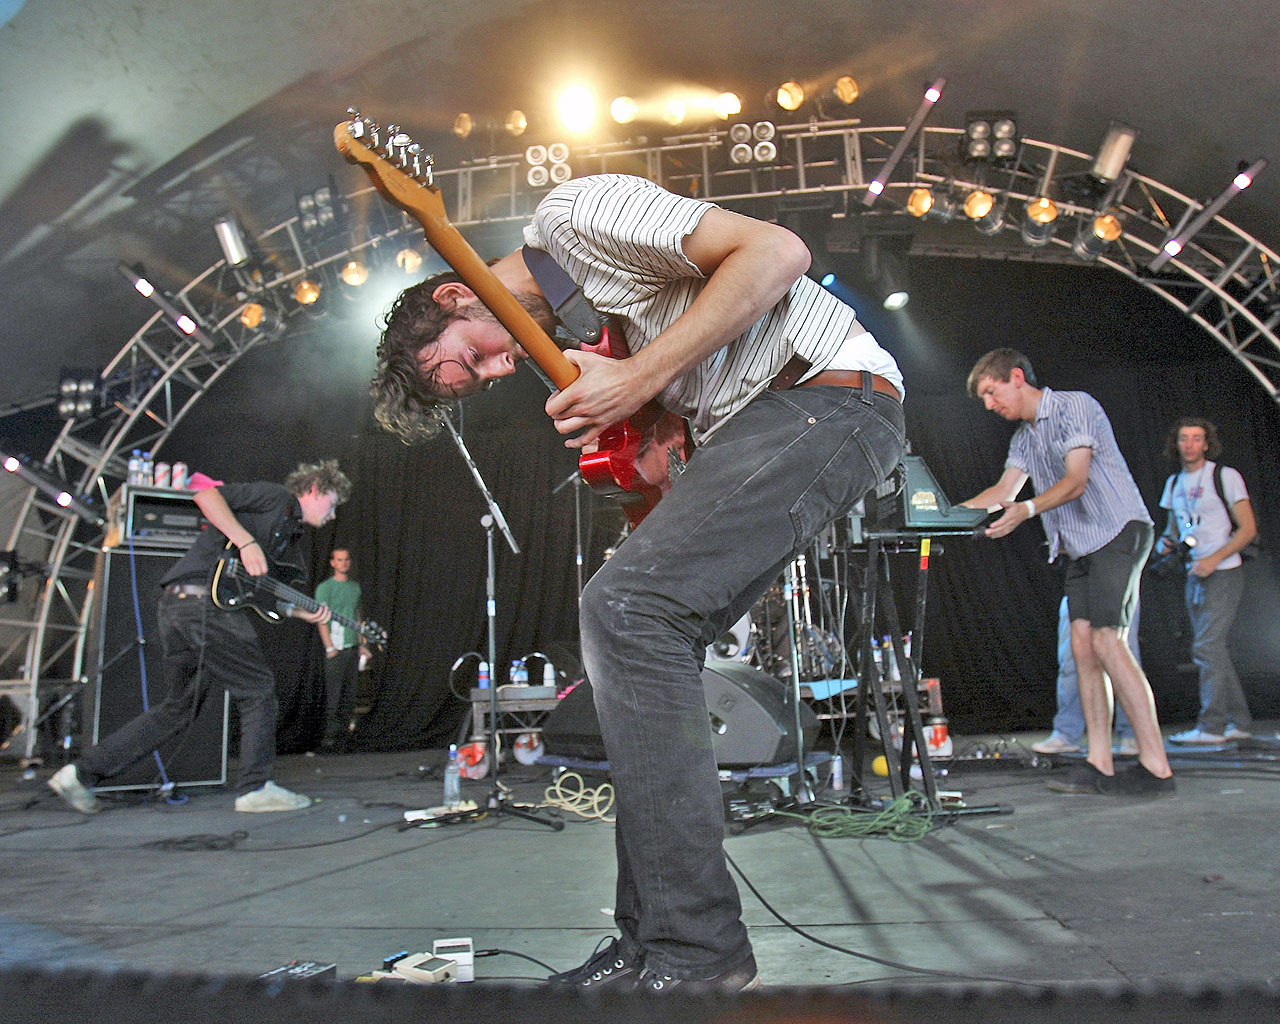 Foals Invade the Quarter This Sunday at House of Blues